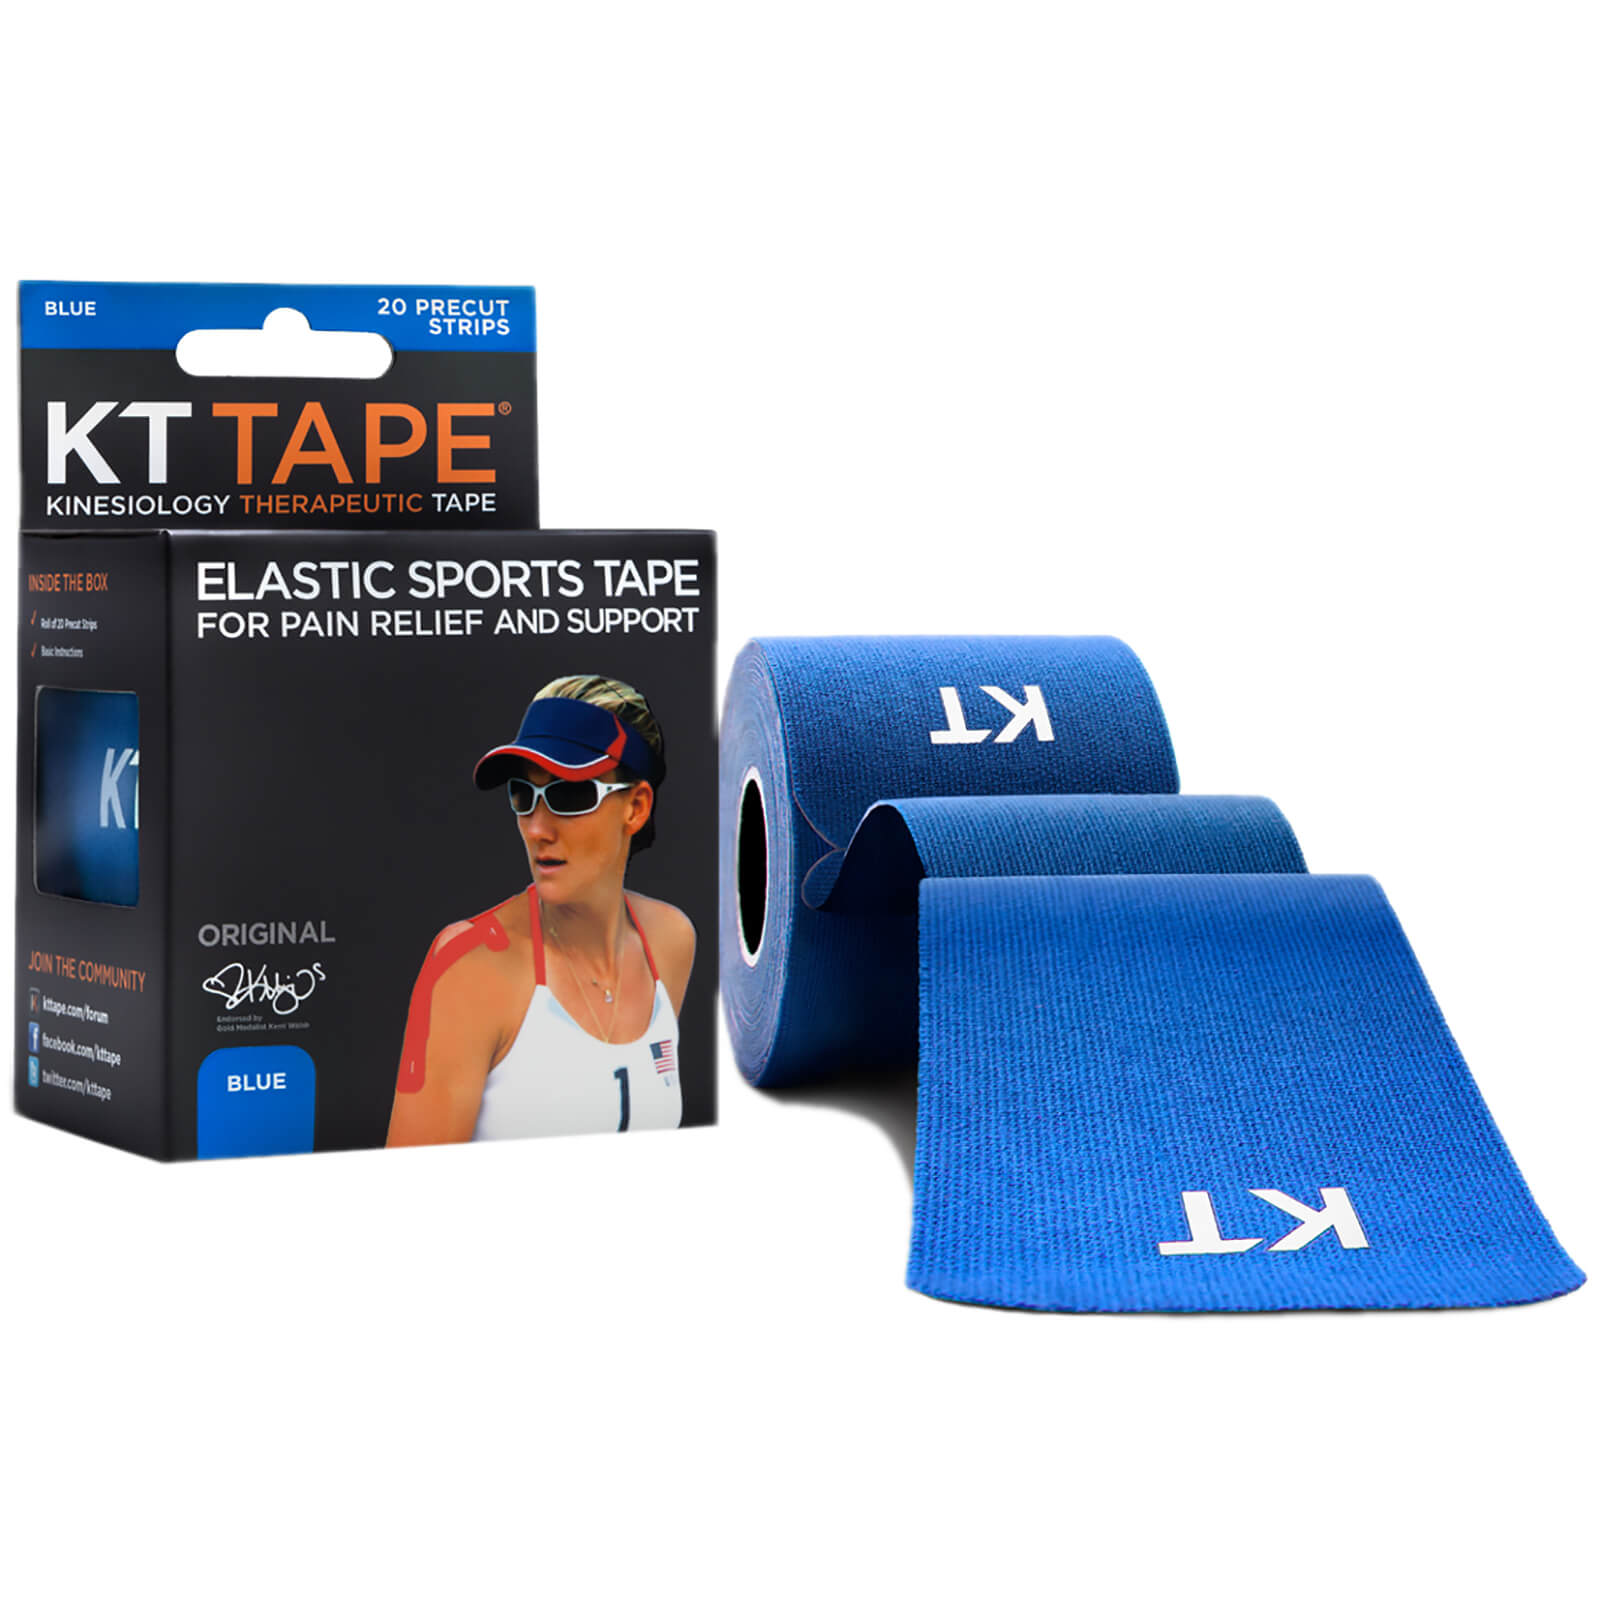 "KT Tape Original Precut Cotton 10"""" - Blue"